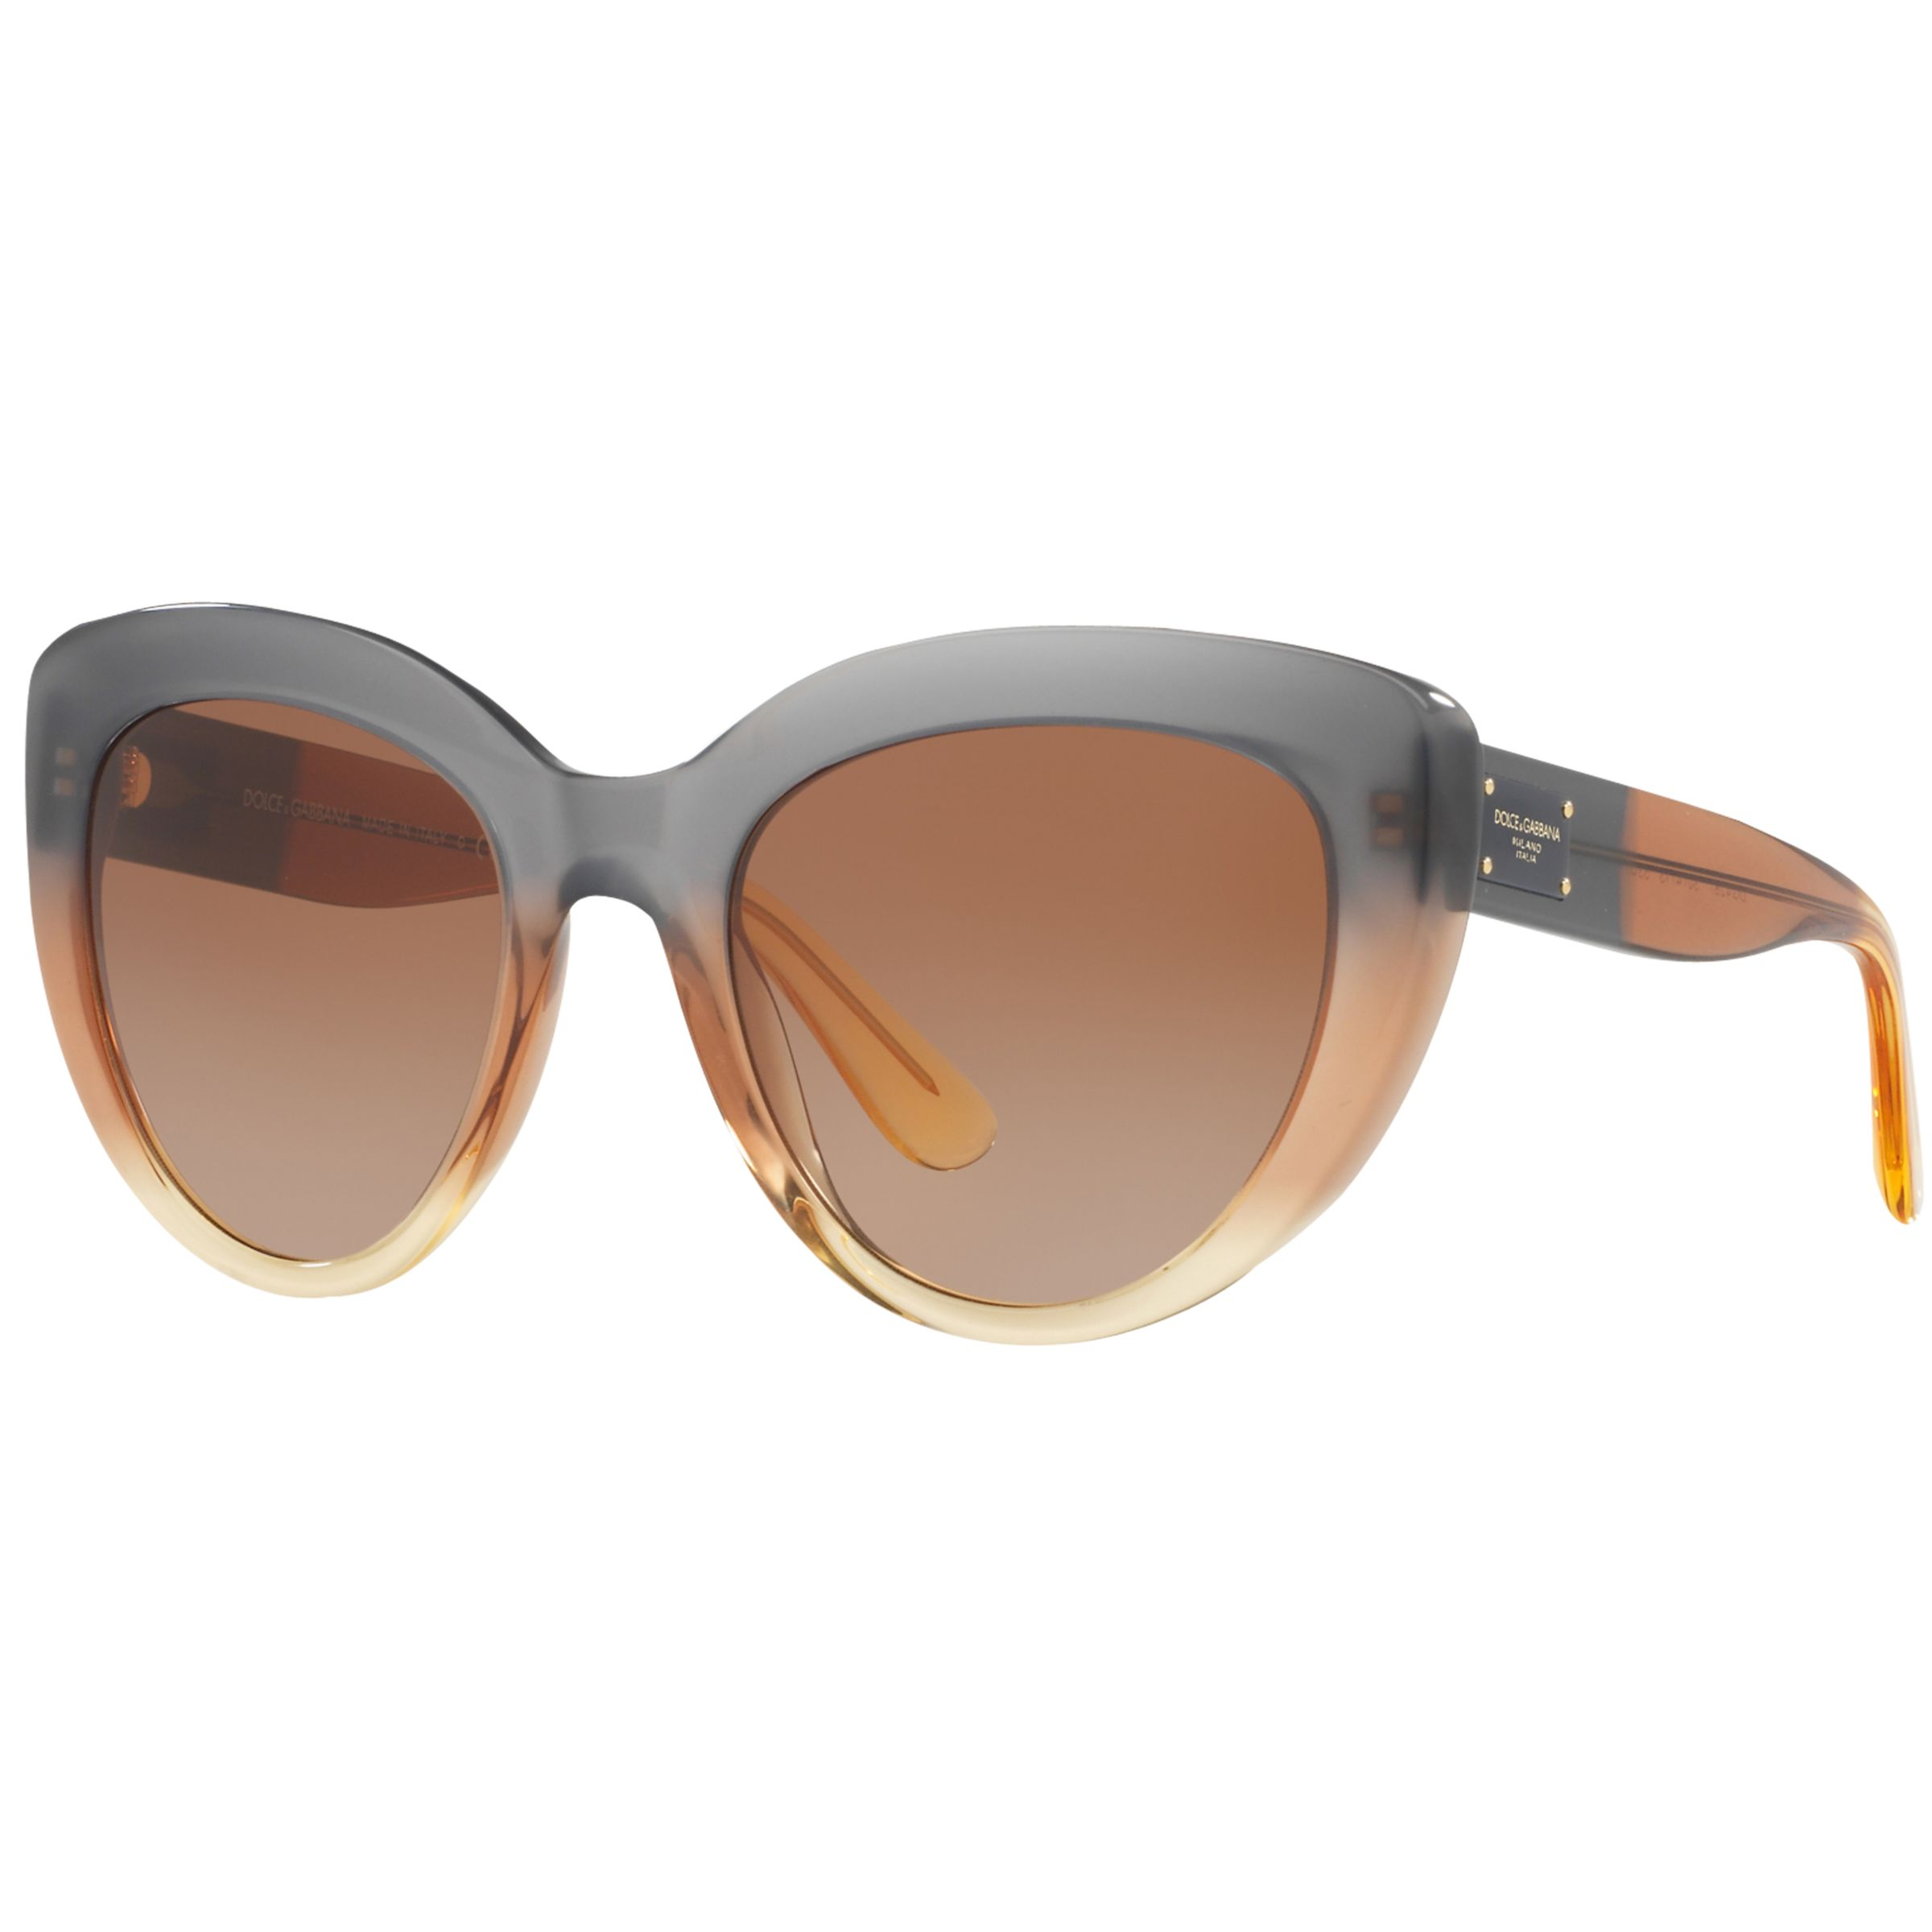 Dolce & Gabbana Dolce & Gabbana DG4287 Cat's Eye Sunglasses